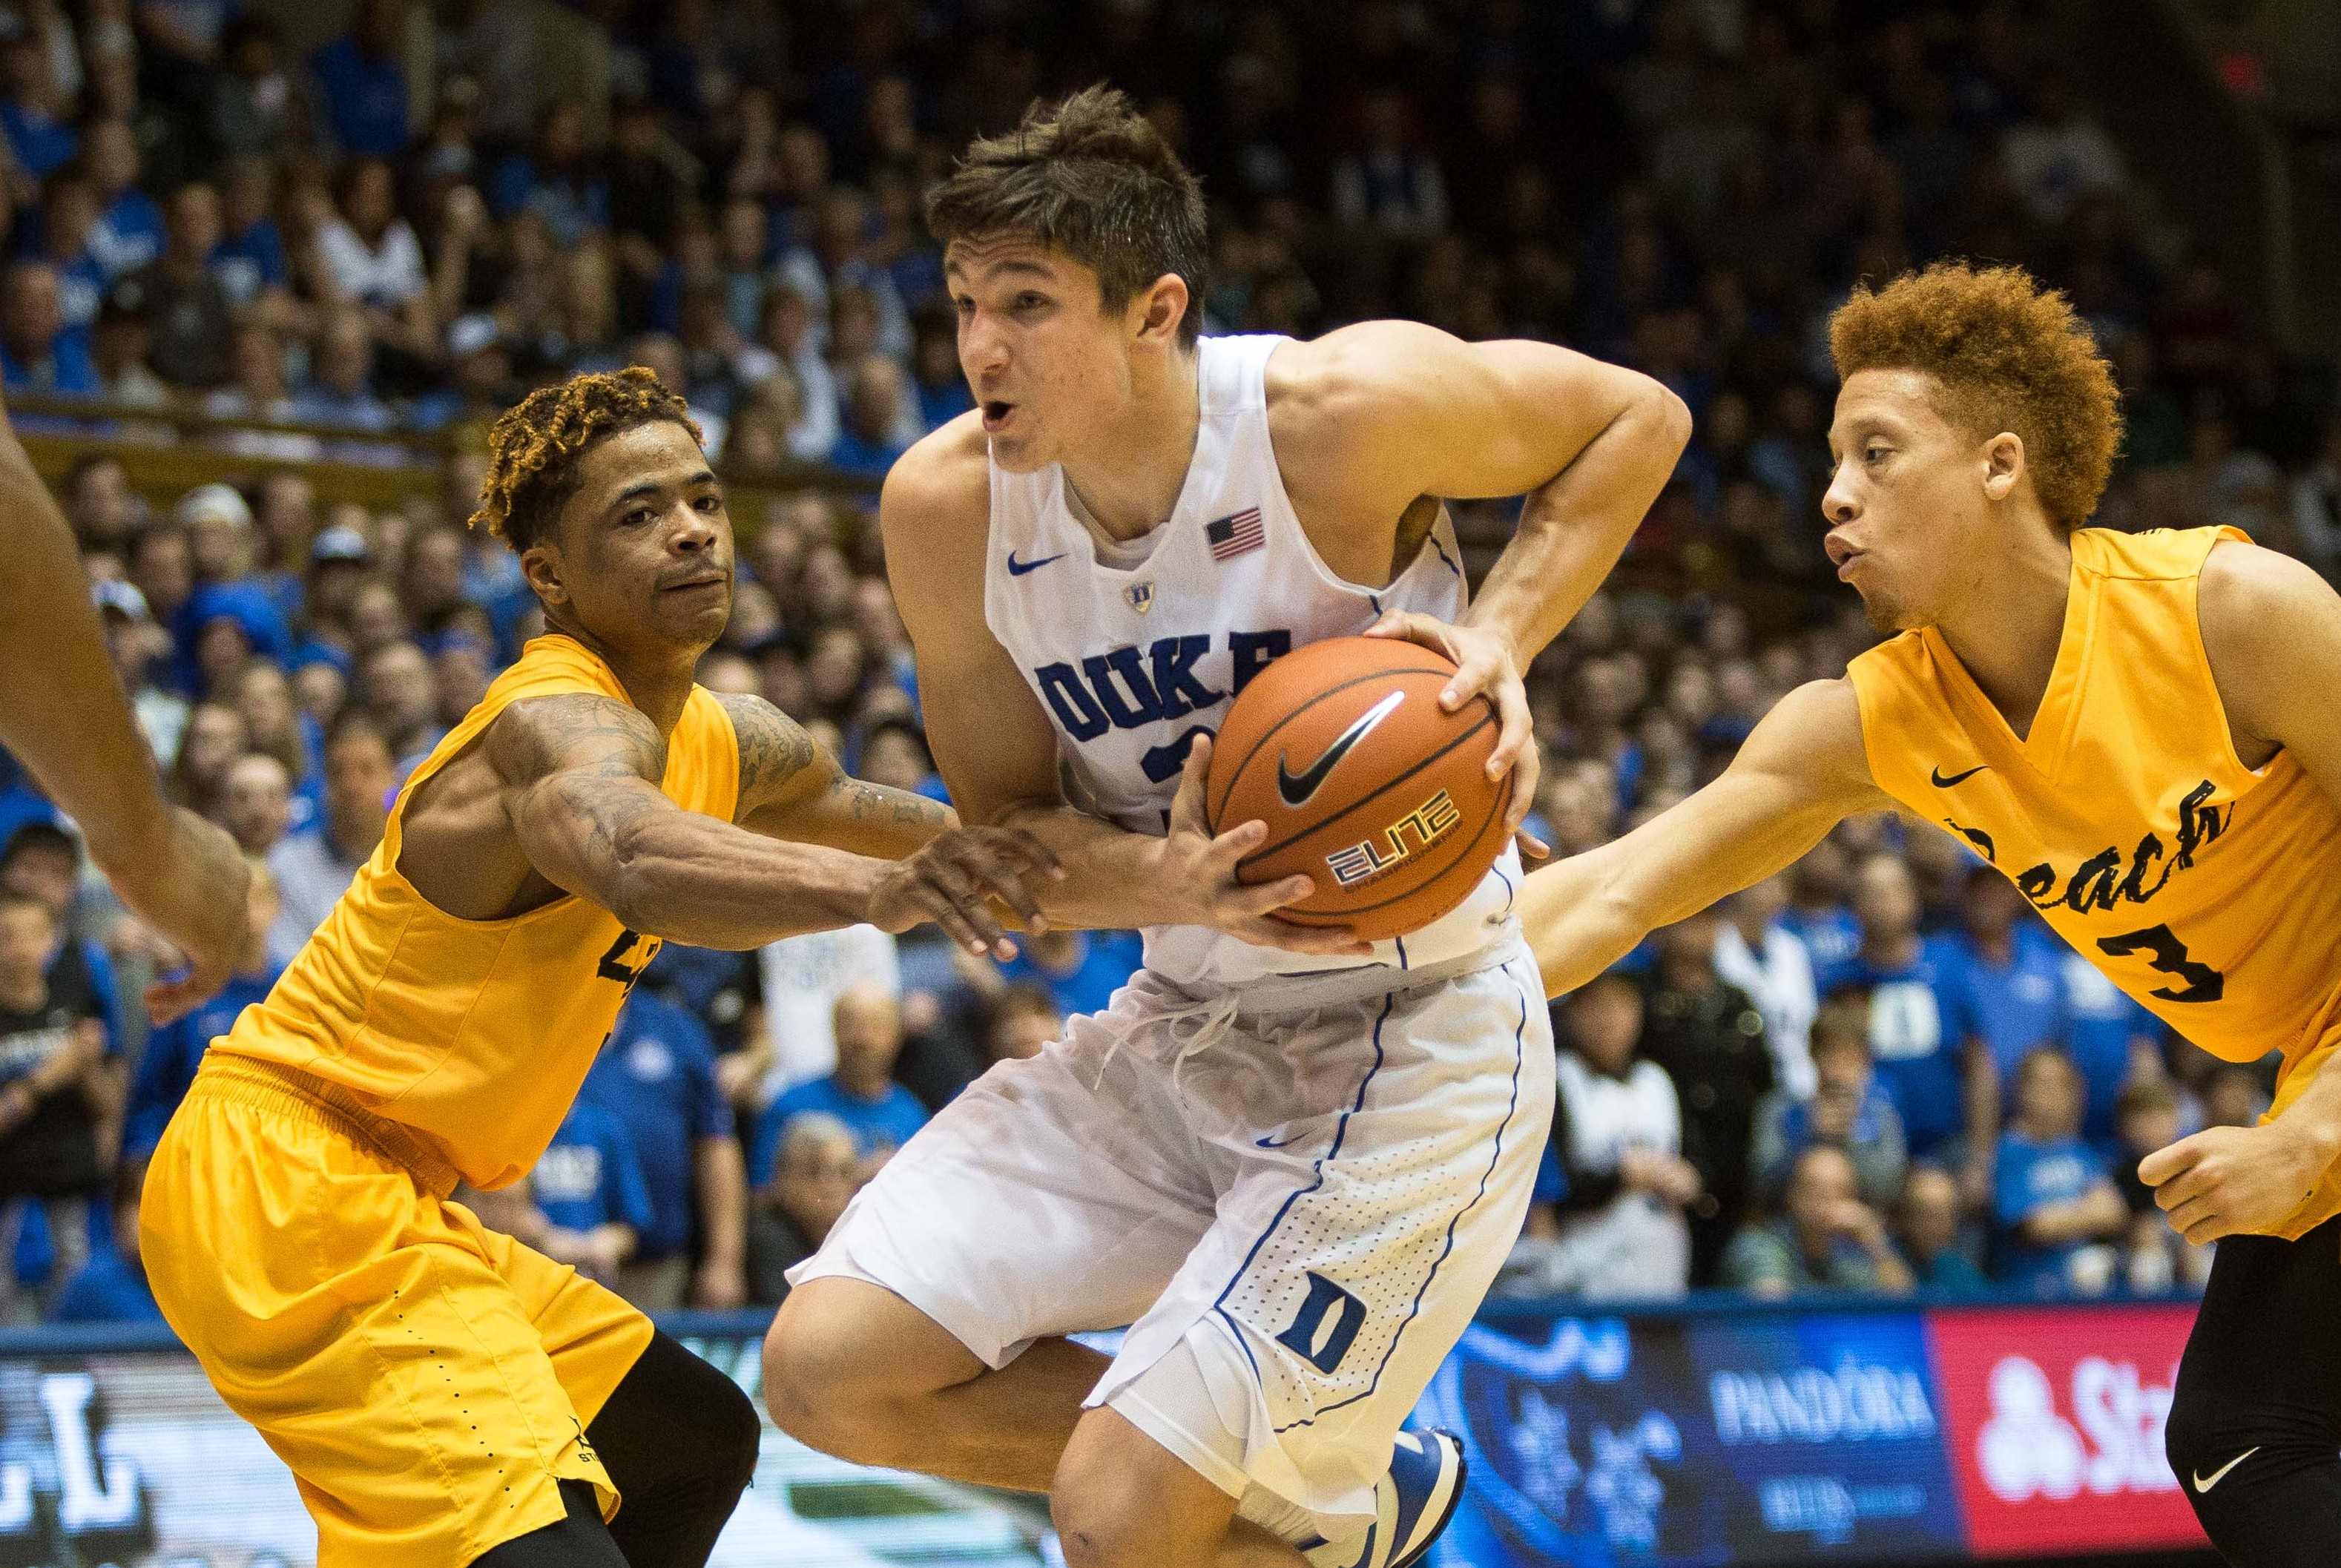 Duke's Grayson Allen, center, handles the ball as Long Beach State's Nick Faust, left, and Long Beach State's Noah Blackwell (3) defend during the second half of an NCAA college basketball game in Durham, N.C. Wednesday, Dec. 30, 2015. Duke won 103-81. (AP Photo/Ben McKeown)